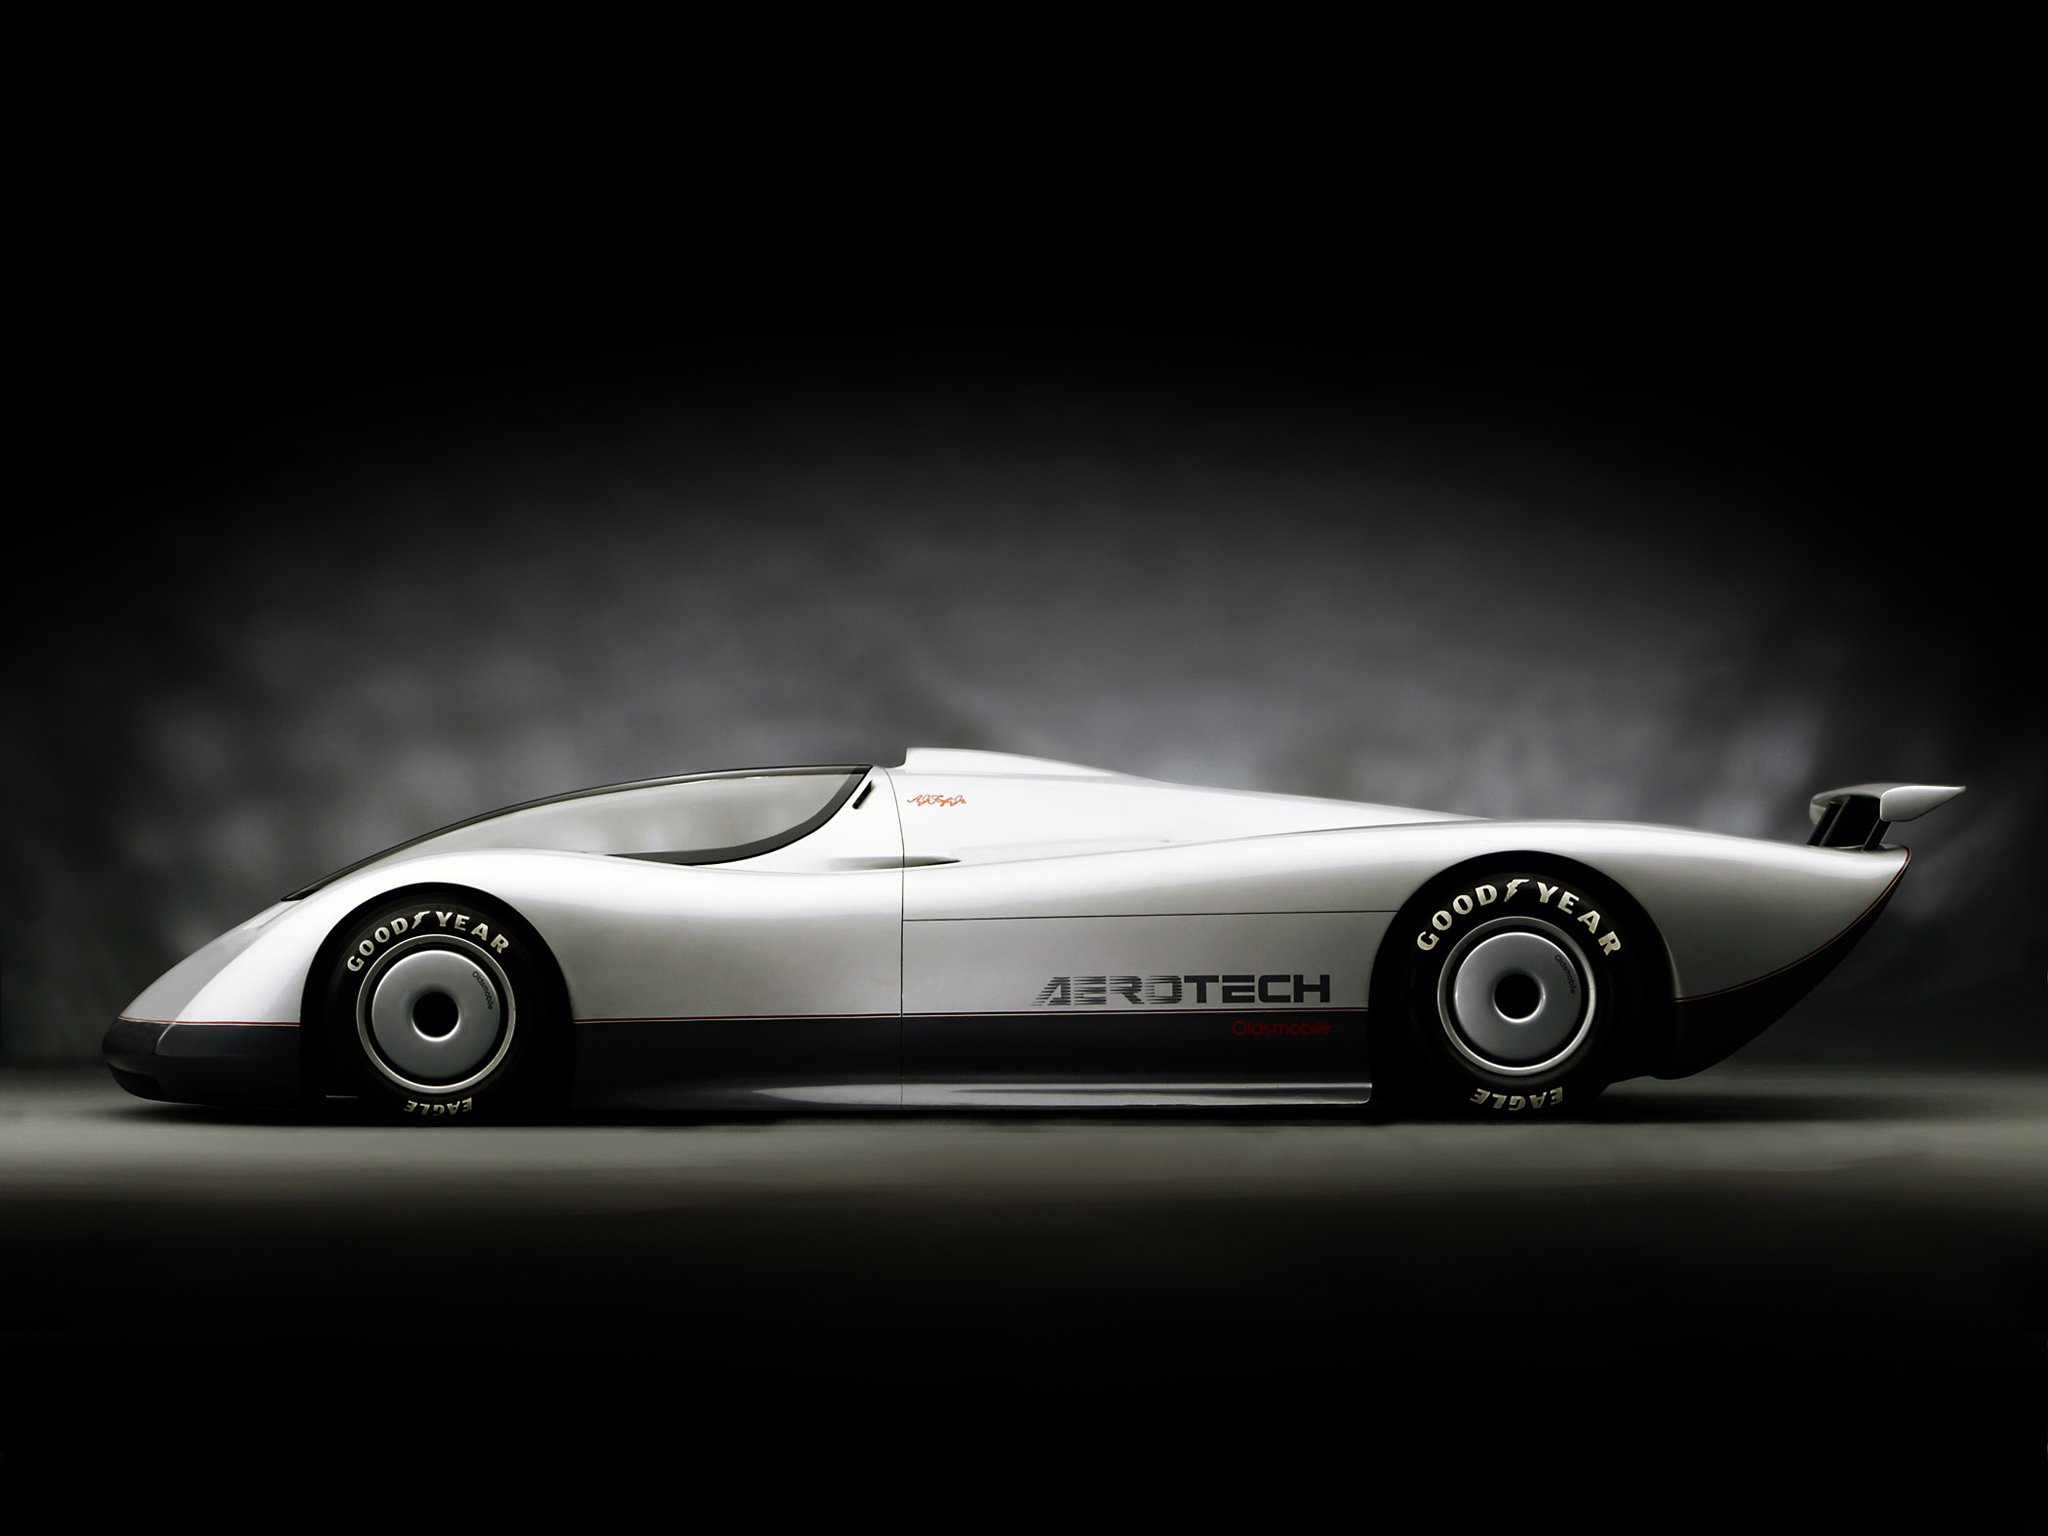 1987 Oldsmobile Aerotech I Long Tail Concept supercar supercars classic